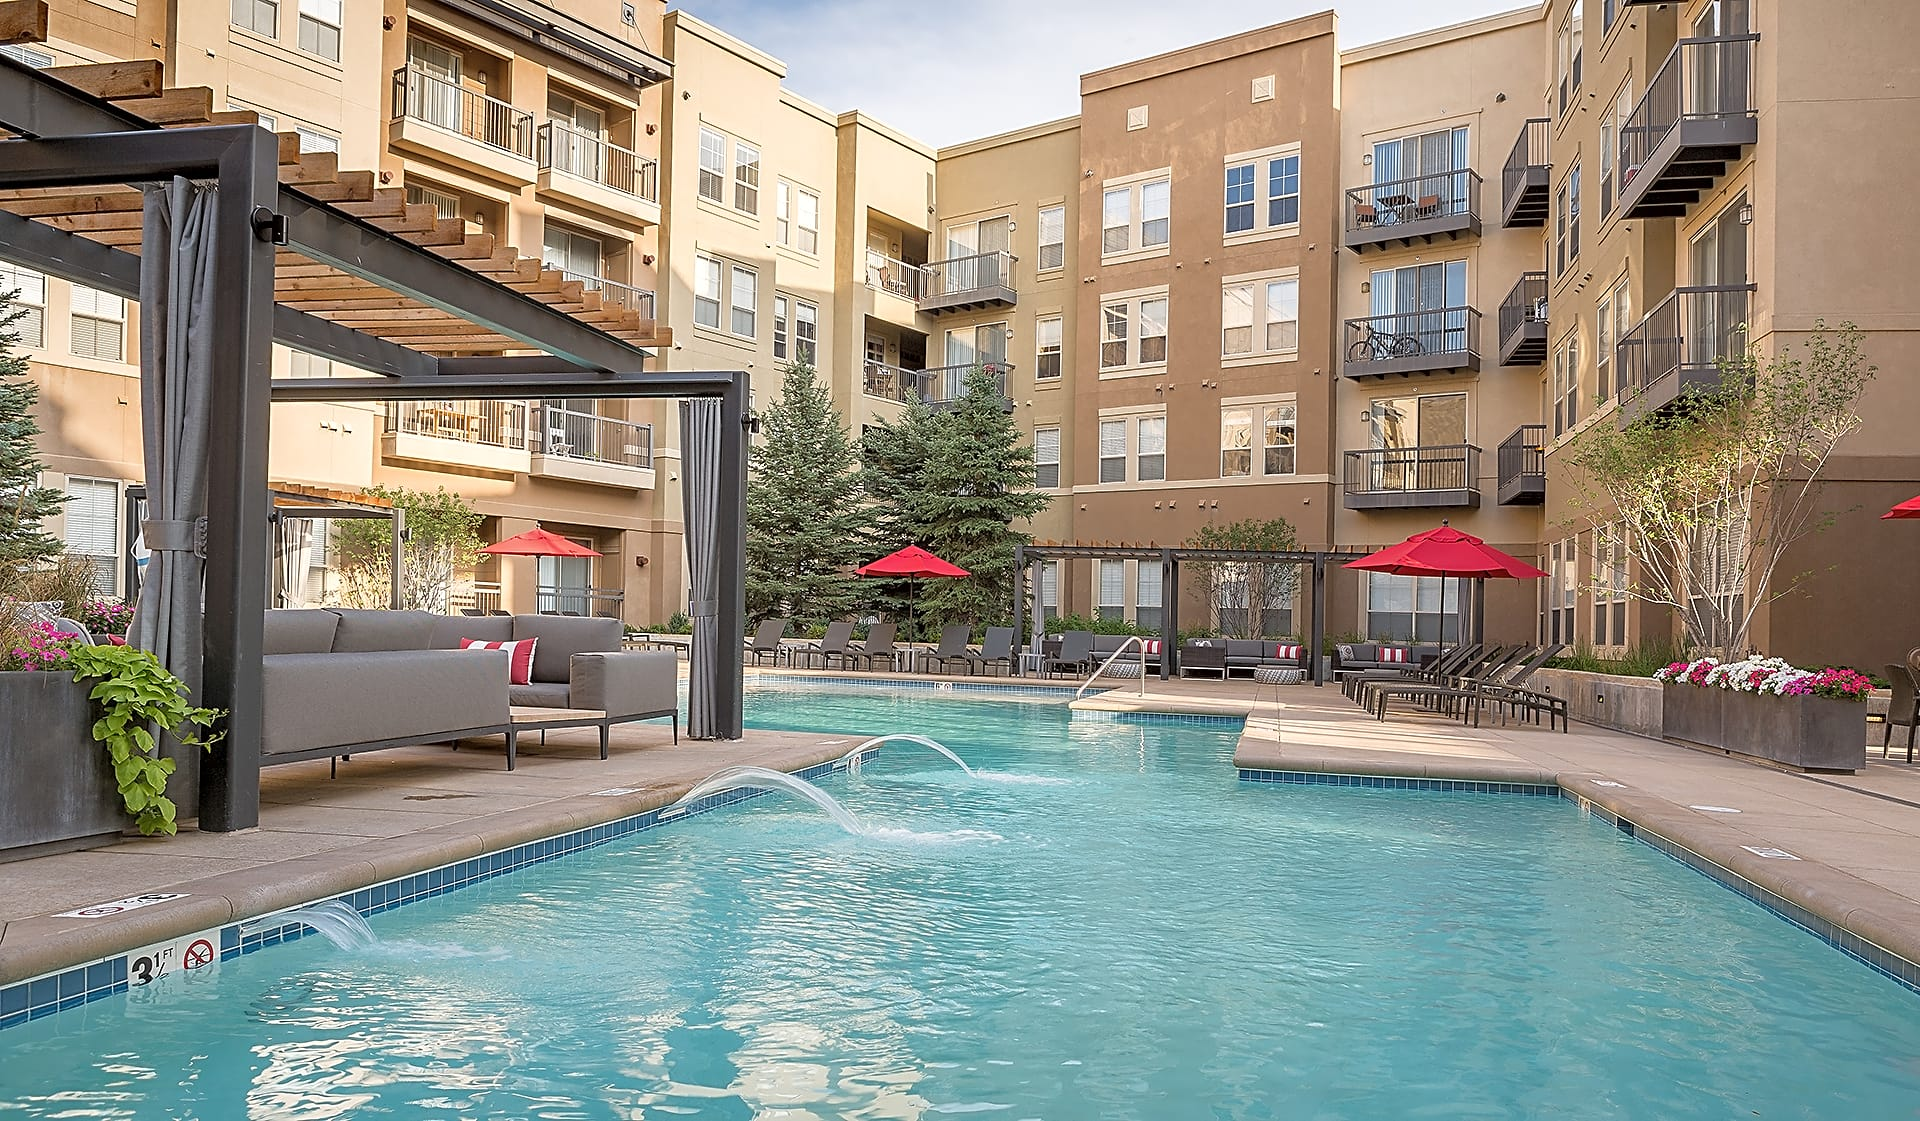 Take a dive into the new heated pool